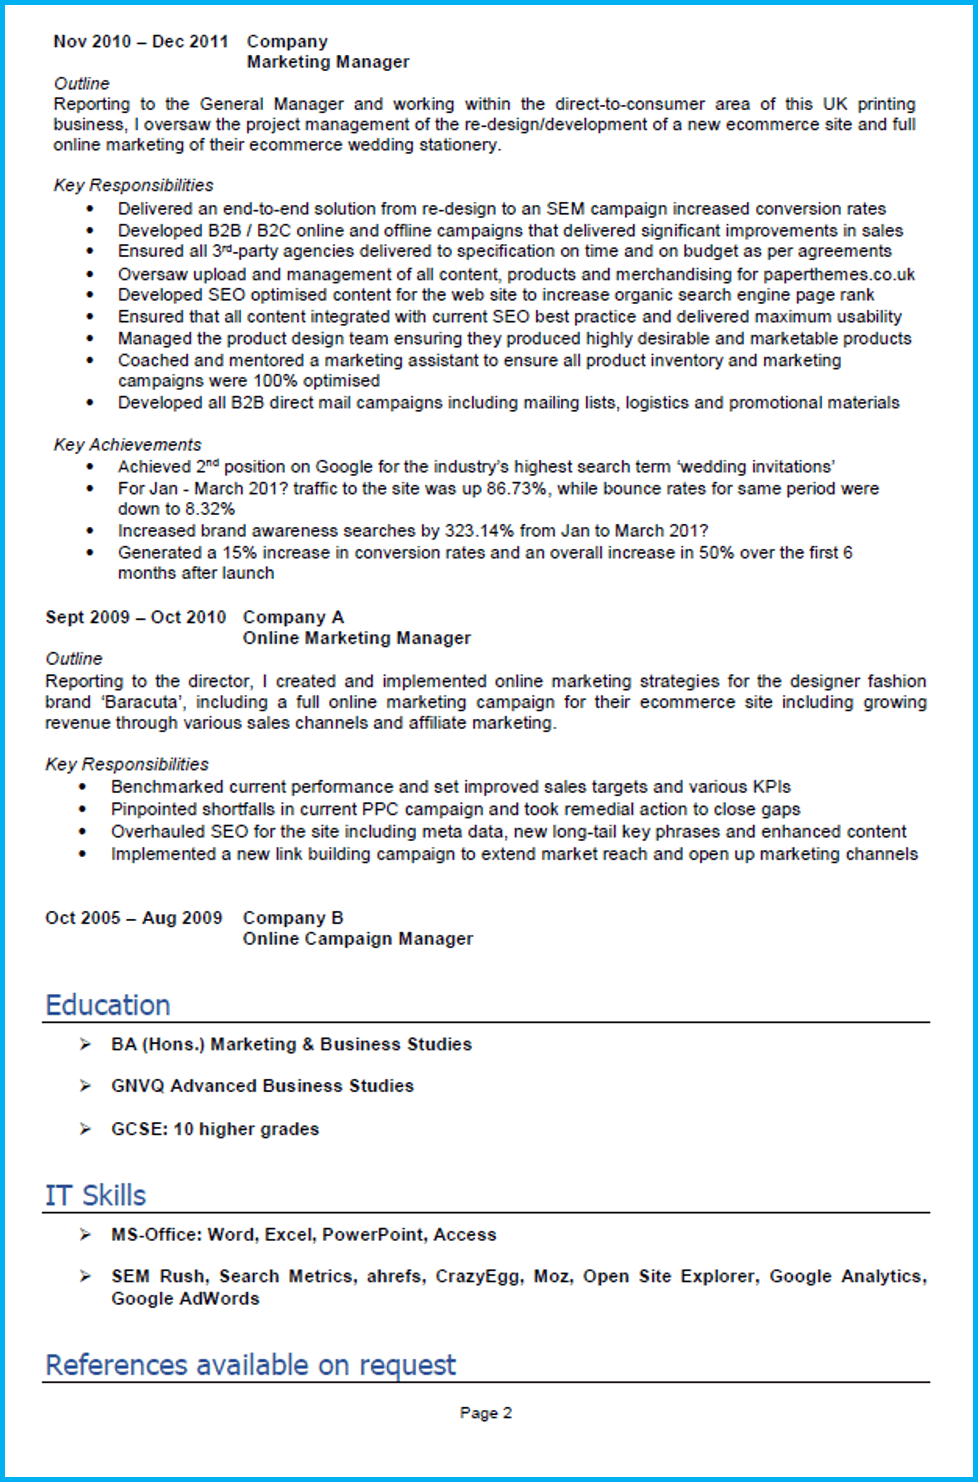 Digital marketing CV example (with writing guide and CV template)